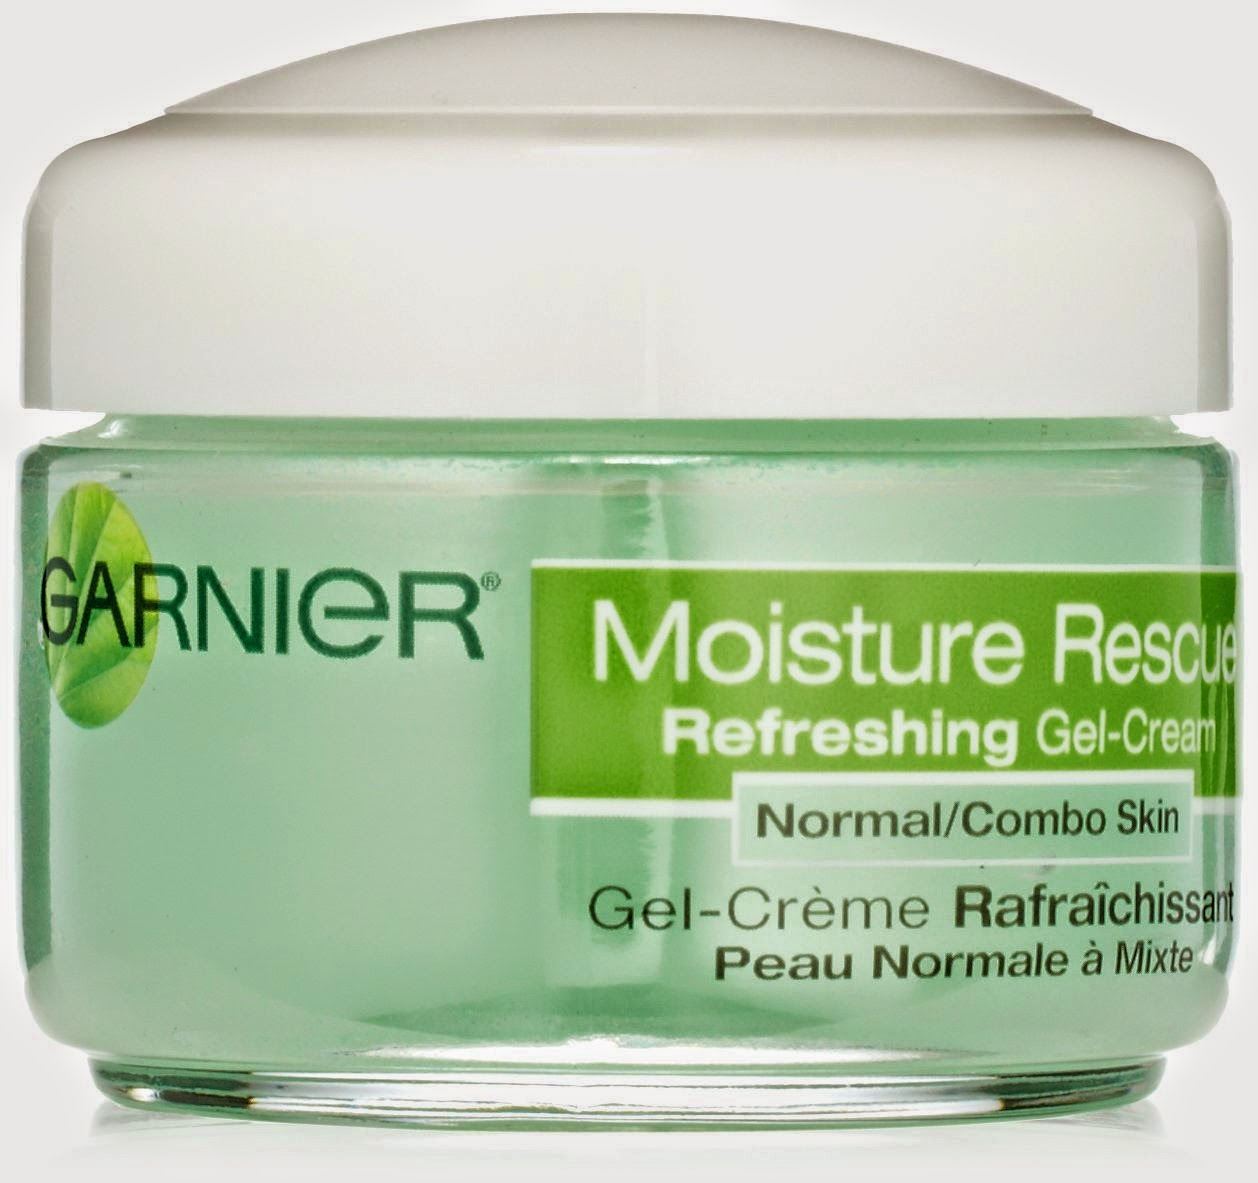 GARNIER 24HR MOISTURE RESCUE GEL